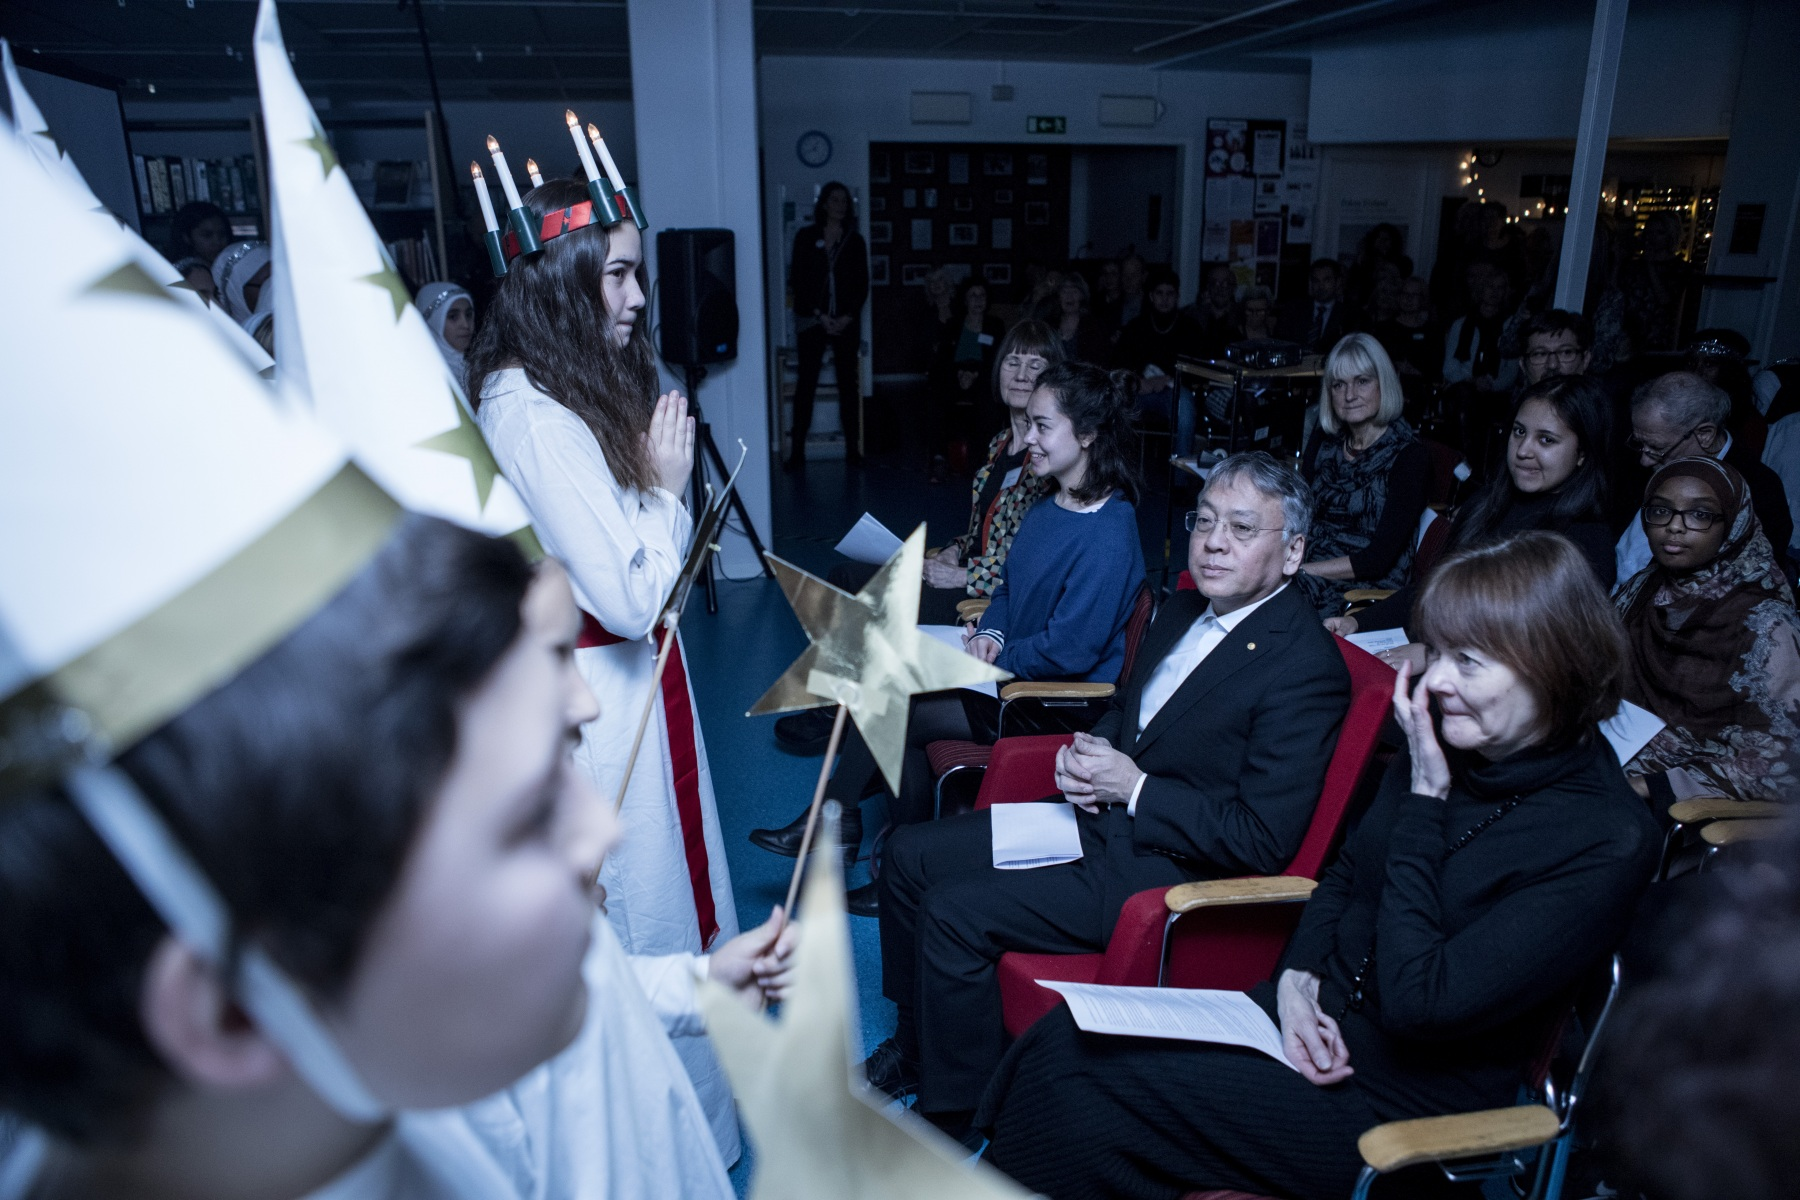 The Nobel prize winner in literaturein 2017,  Kazuo Ishiguro visits a school in Stockholm.